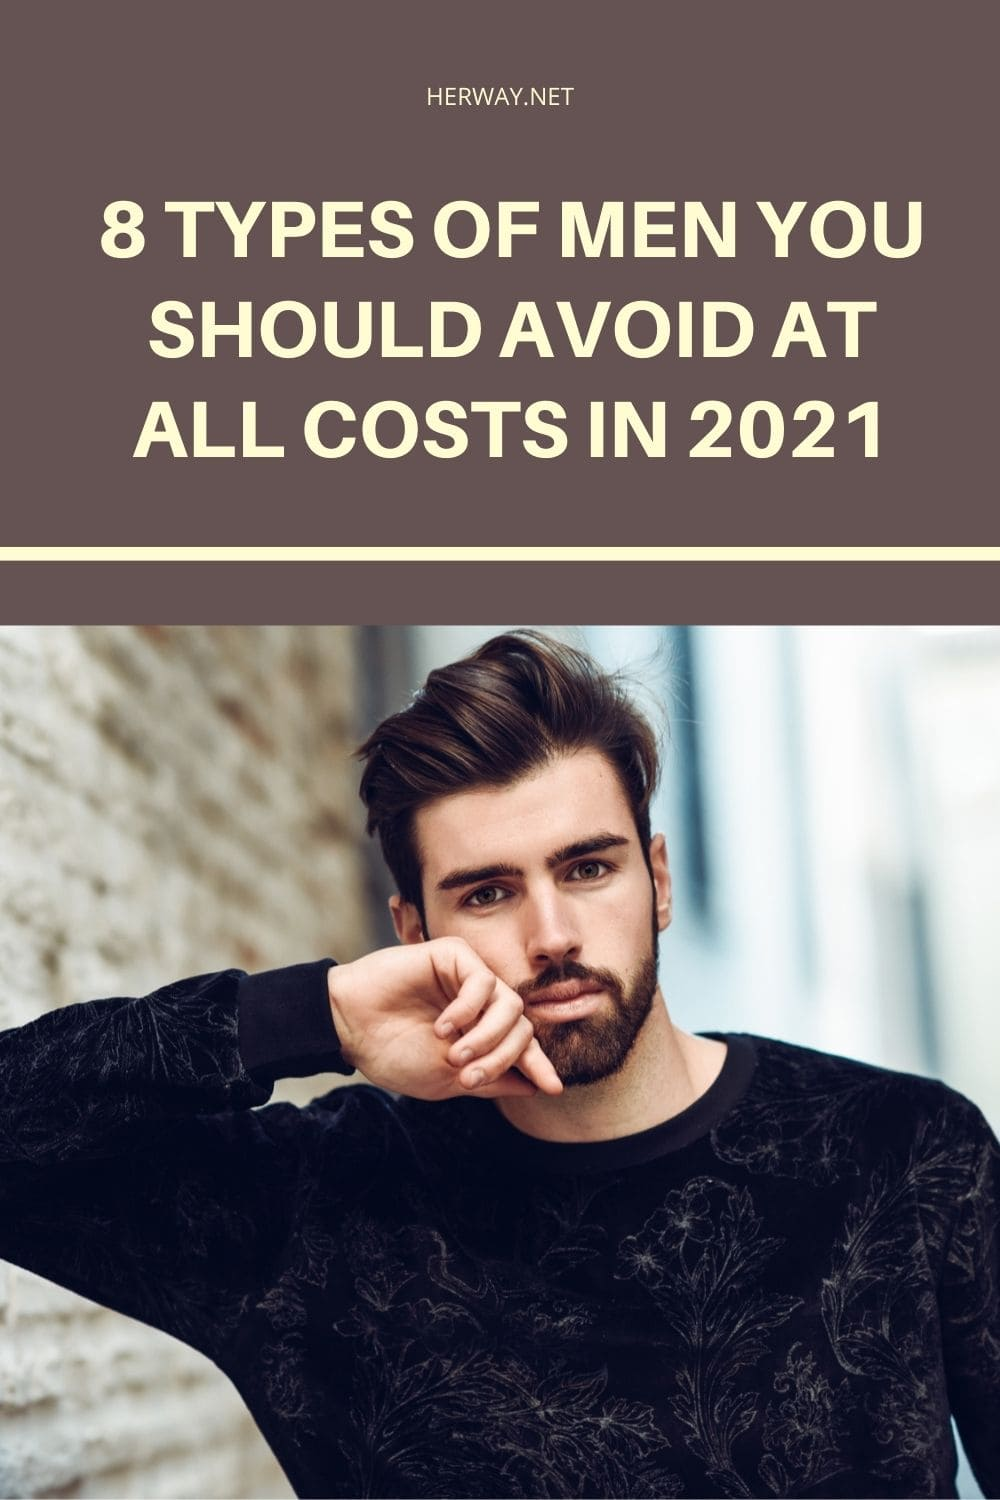 8 Types Of Men You Should Avoid At All Costs In 2021